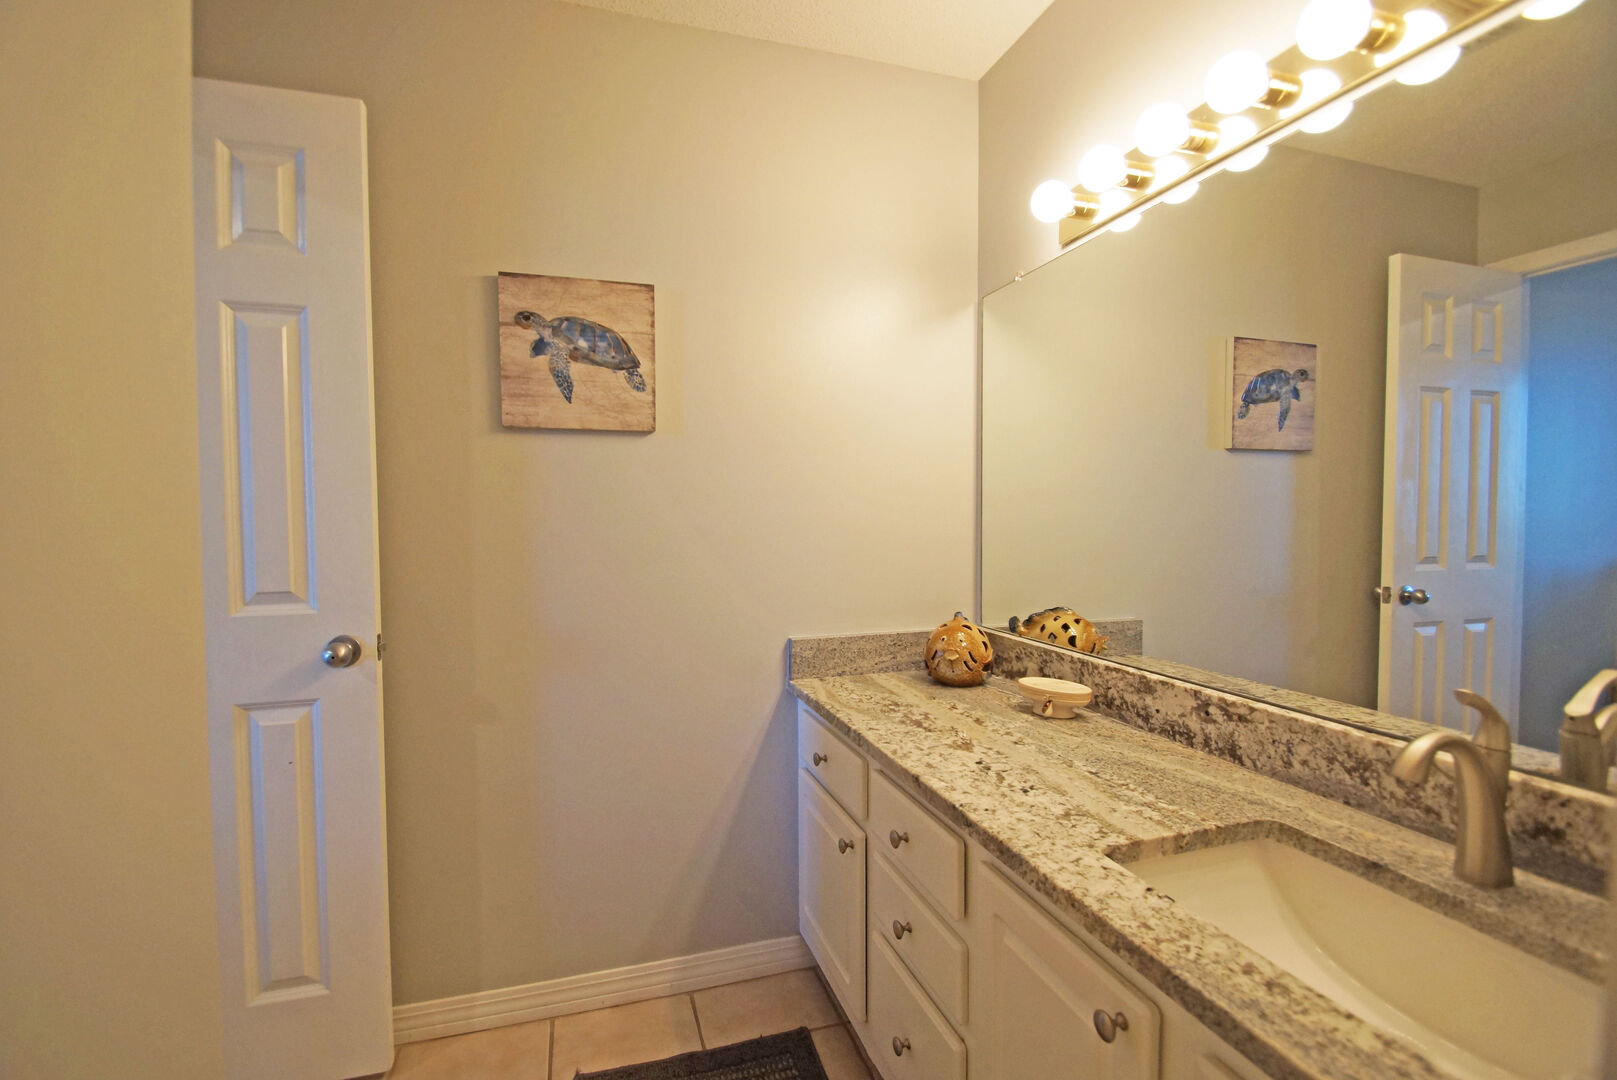 New counter tops in the master bath.